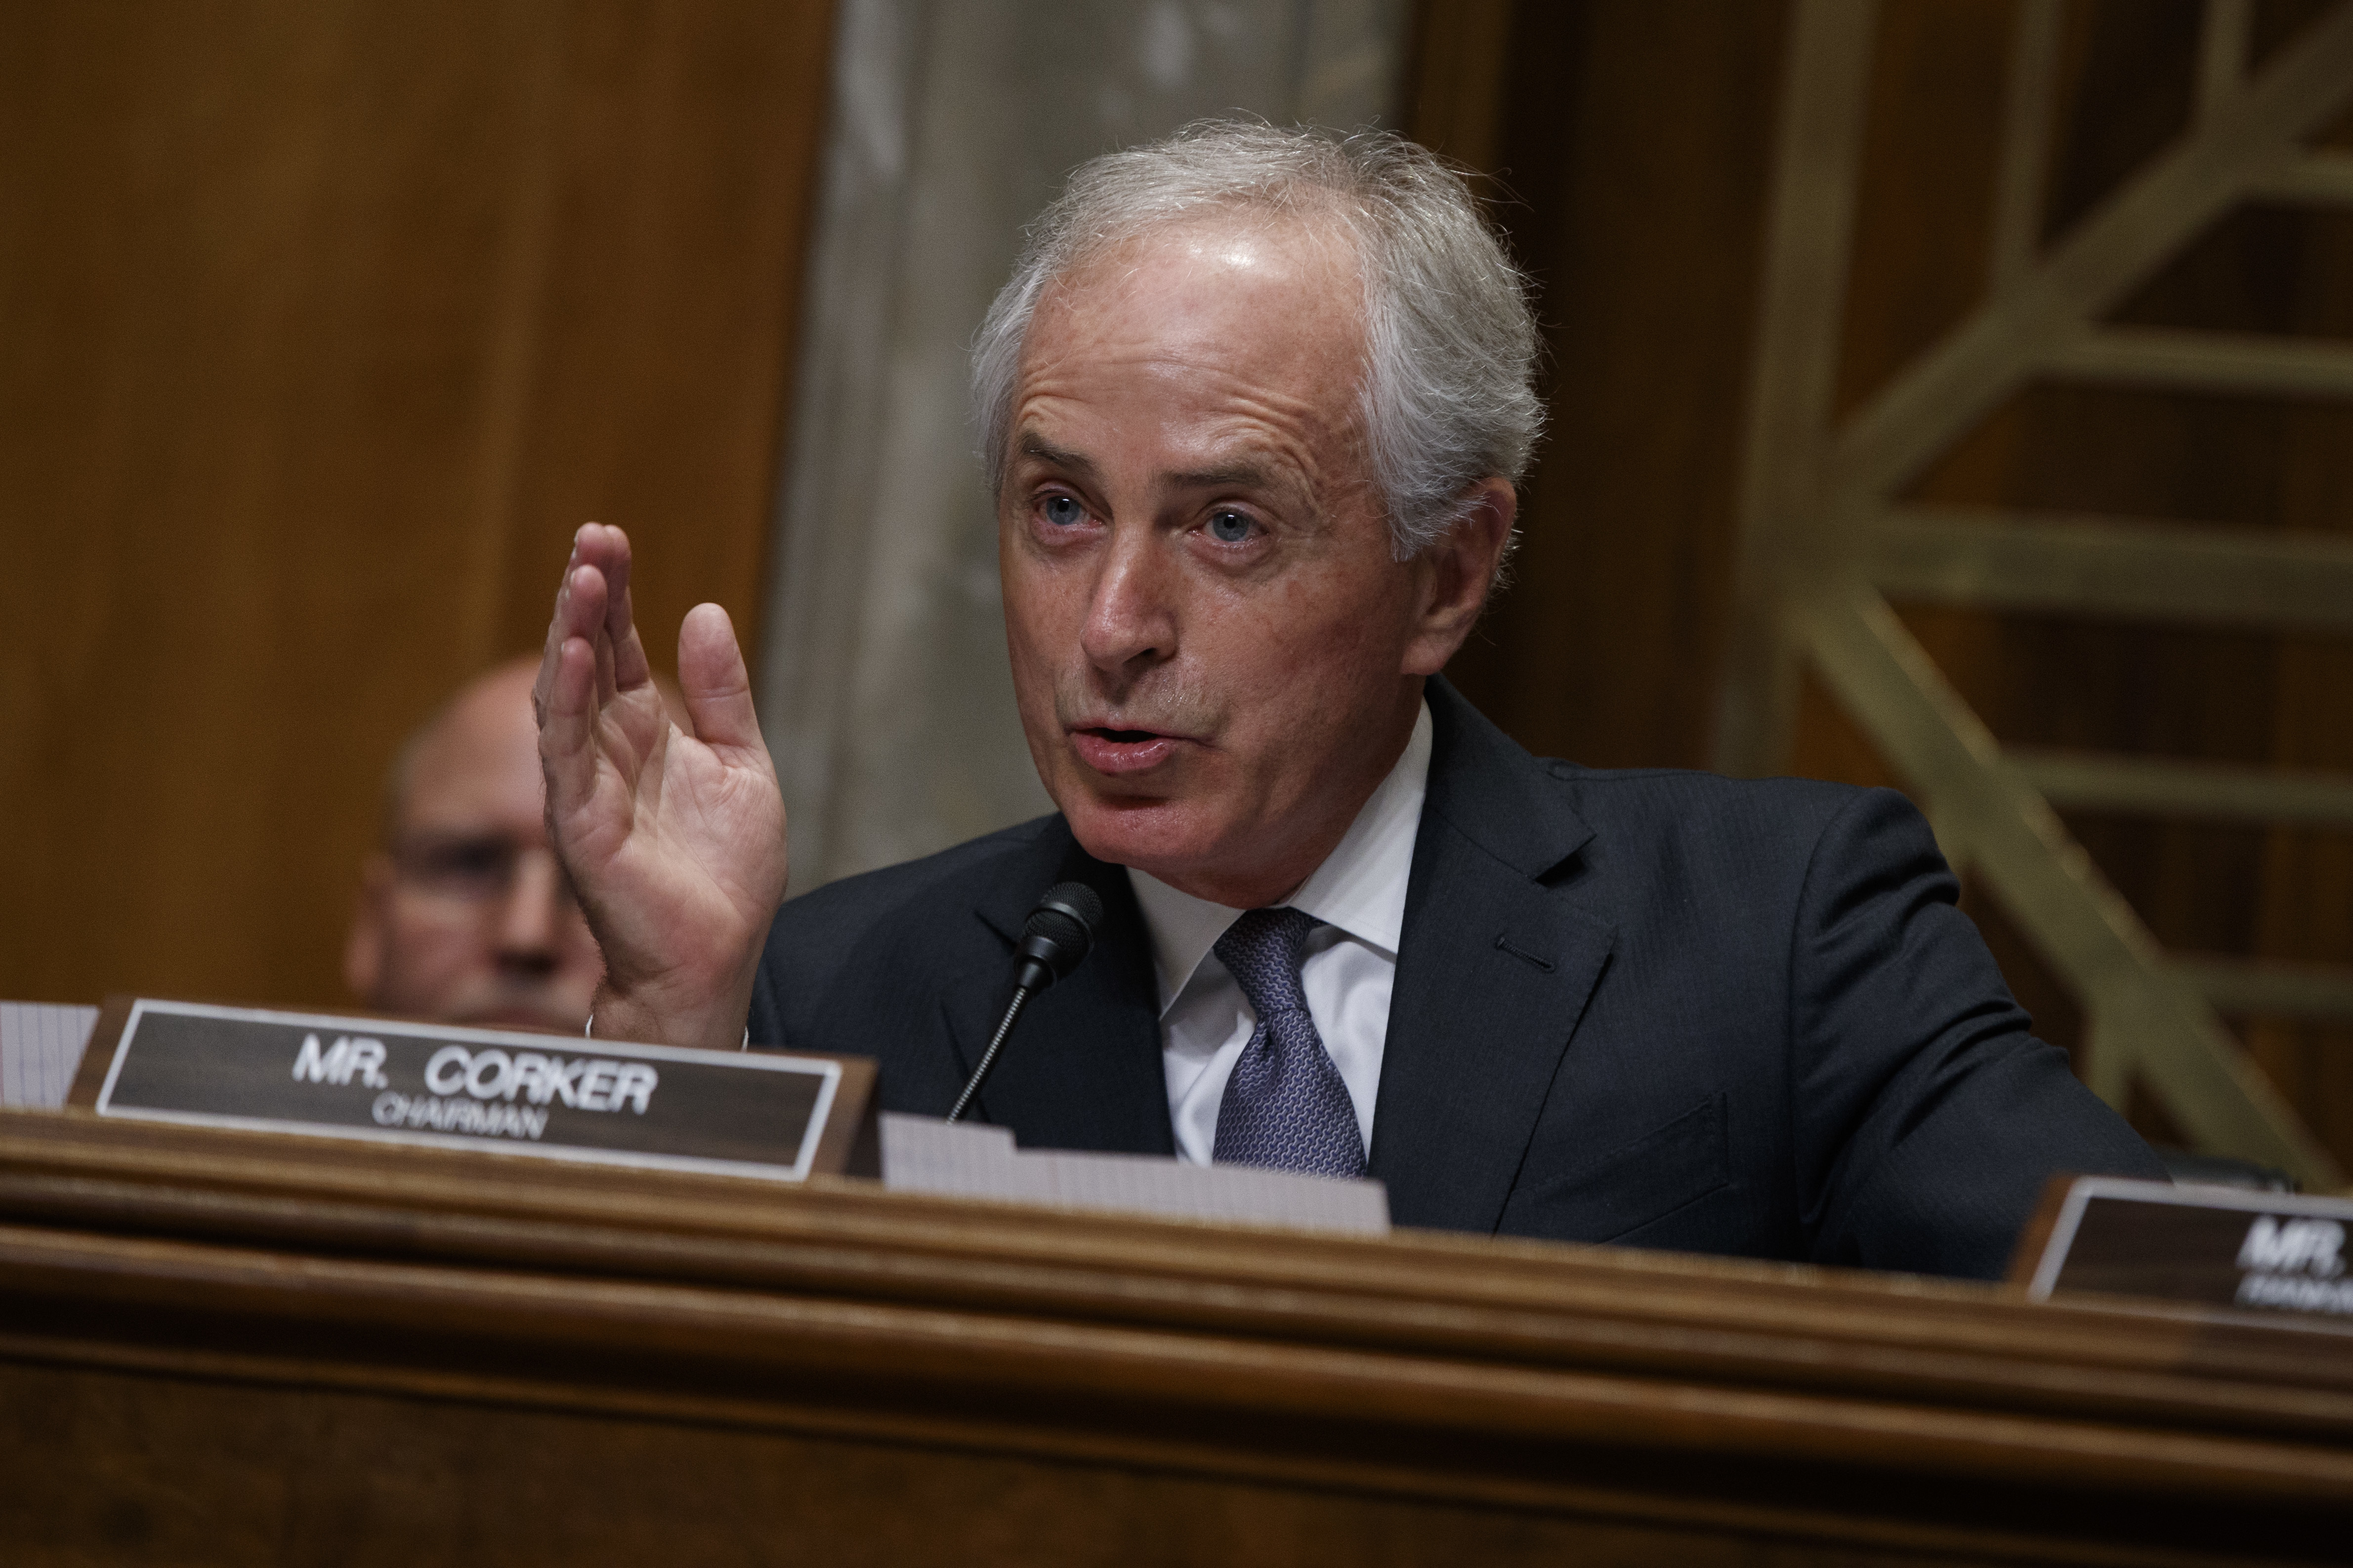 Sen. Bob Corker, R-Tenn., the chairman of the Foreign Relations Committee, speaks on Capitol Hill in Washington during the committee's confirmation hearing for UN Ambassador-designate, South Carolina Gov. Nikki Haley. (AP Photo/Evan Vucci)